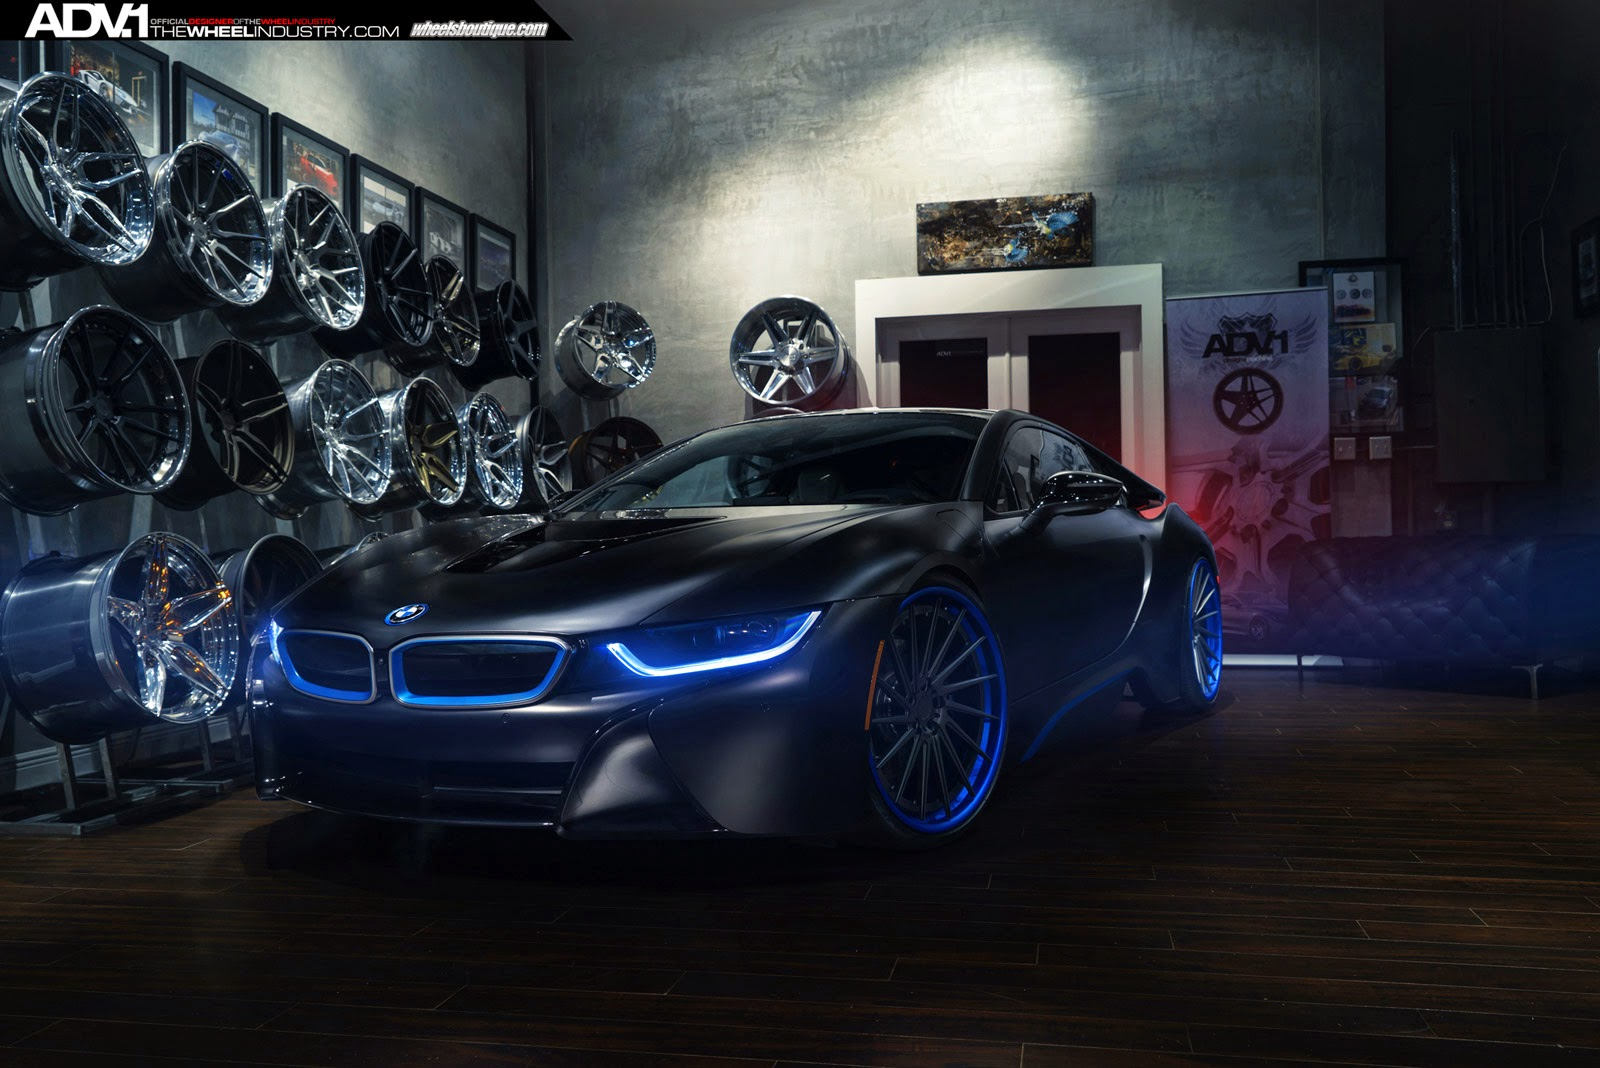 bmw i8 looks sinister with directional adv 1 wheels. Black Bedroom Furniture Sets. Home Design Ideas